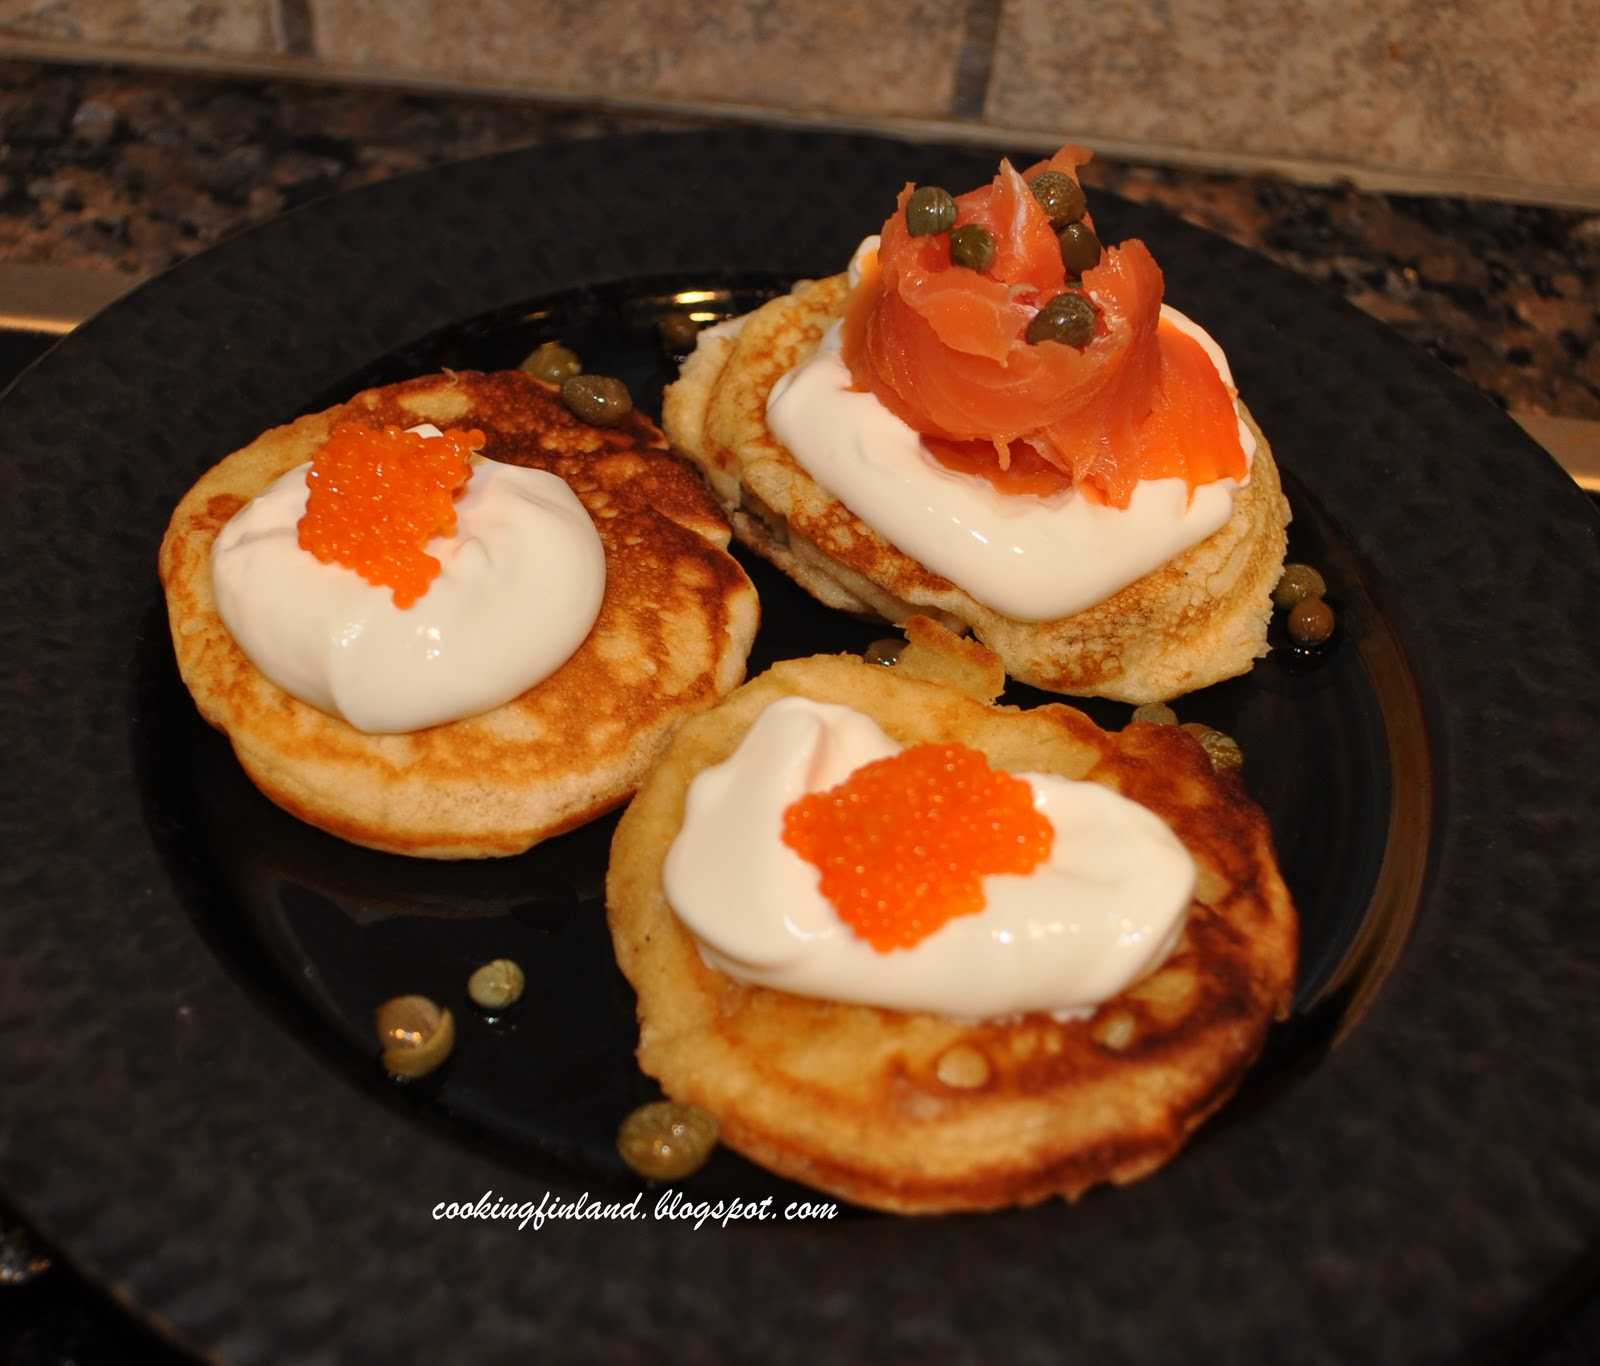 ... Finland: Blinis with sour cream, caviar and smoked salmon--blinit